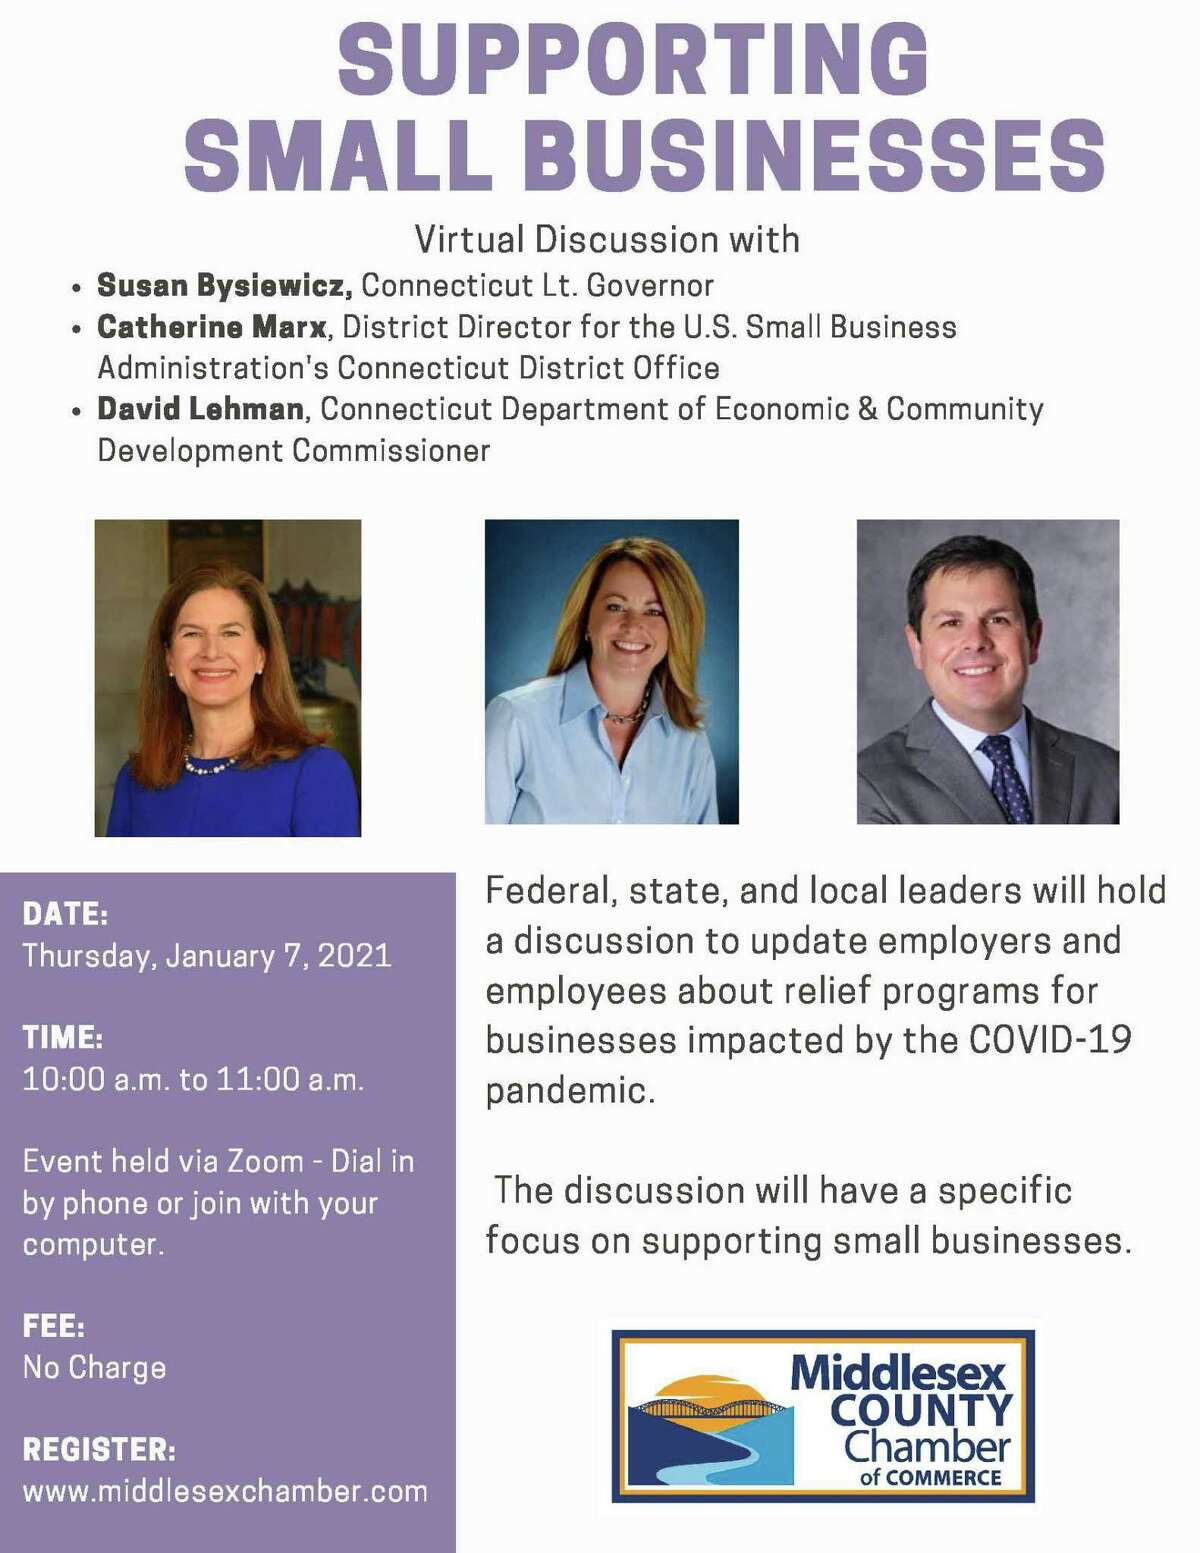 The Middlesex County Chamber of Commerce will host a virtual discussion Thursday on supporting small businesses with Lt. Gov. Susan Bysiewicz via Zoom.